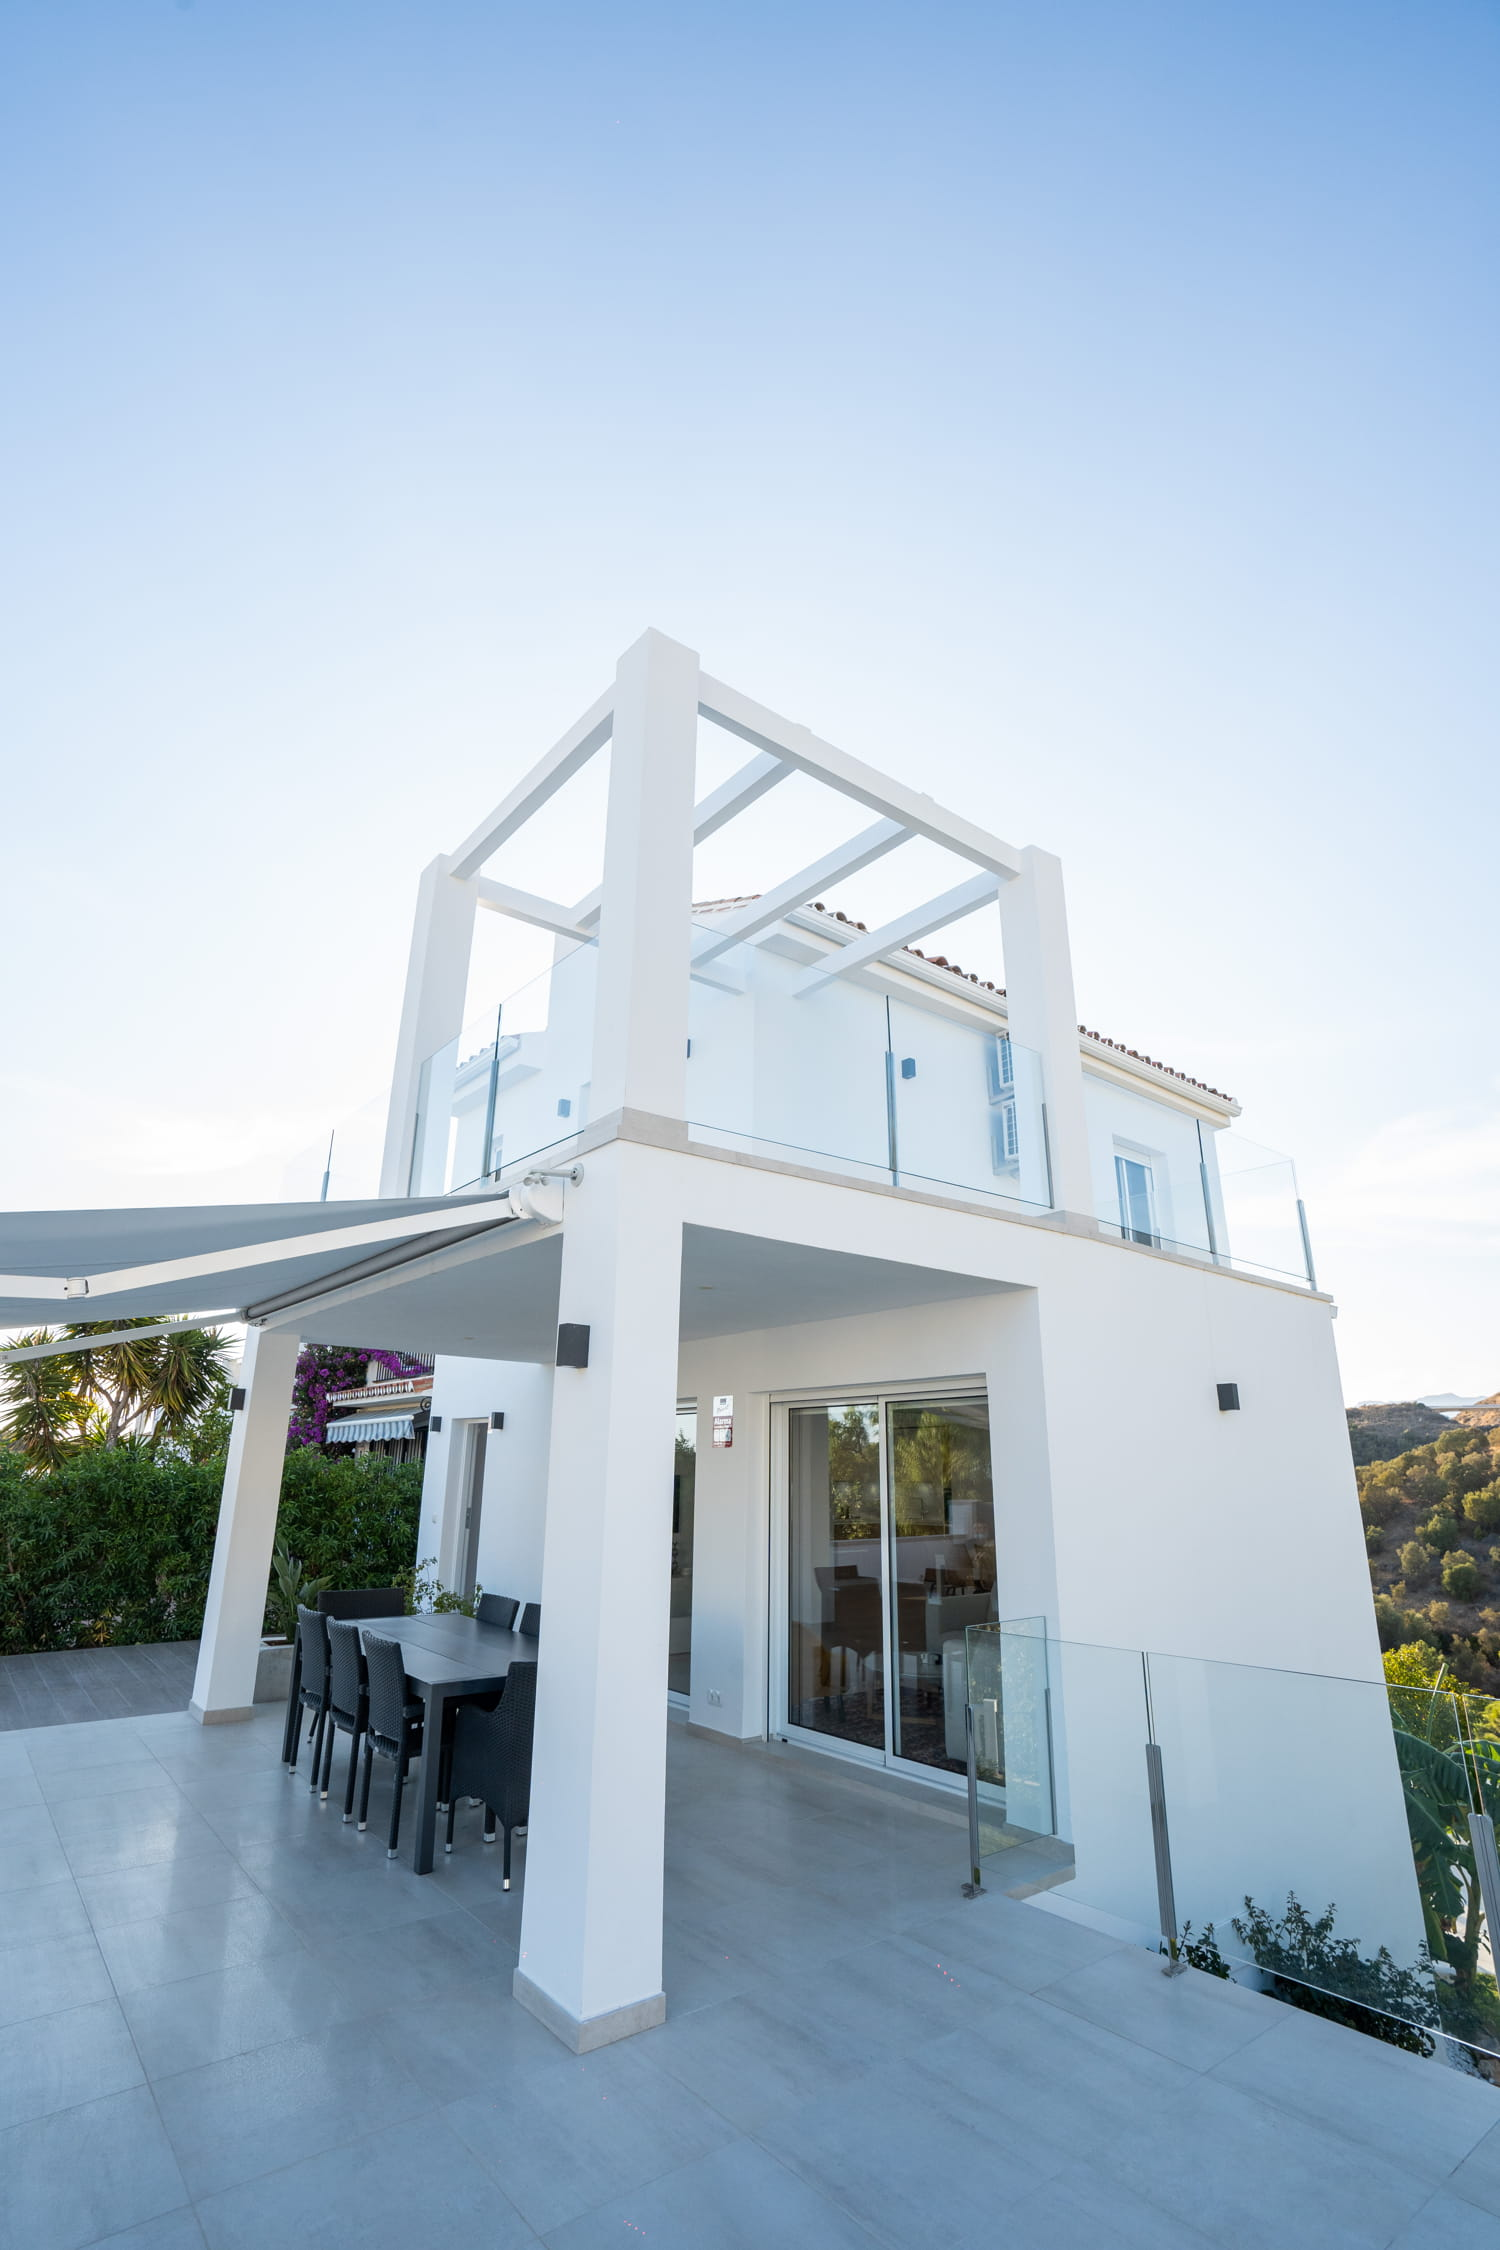 reforma integral villa mijas costa u projects (8)